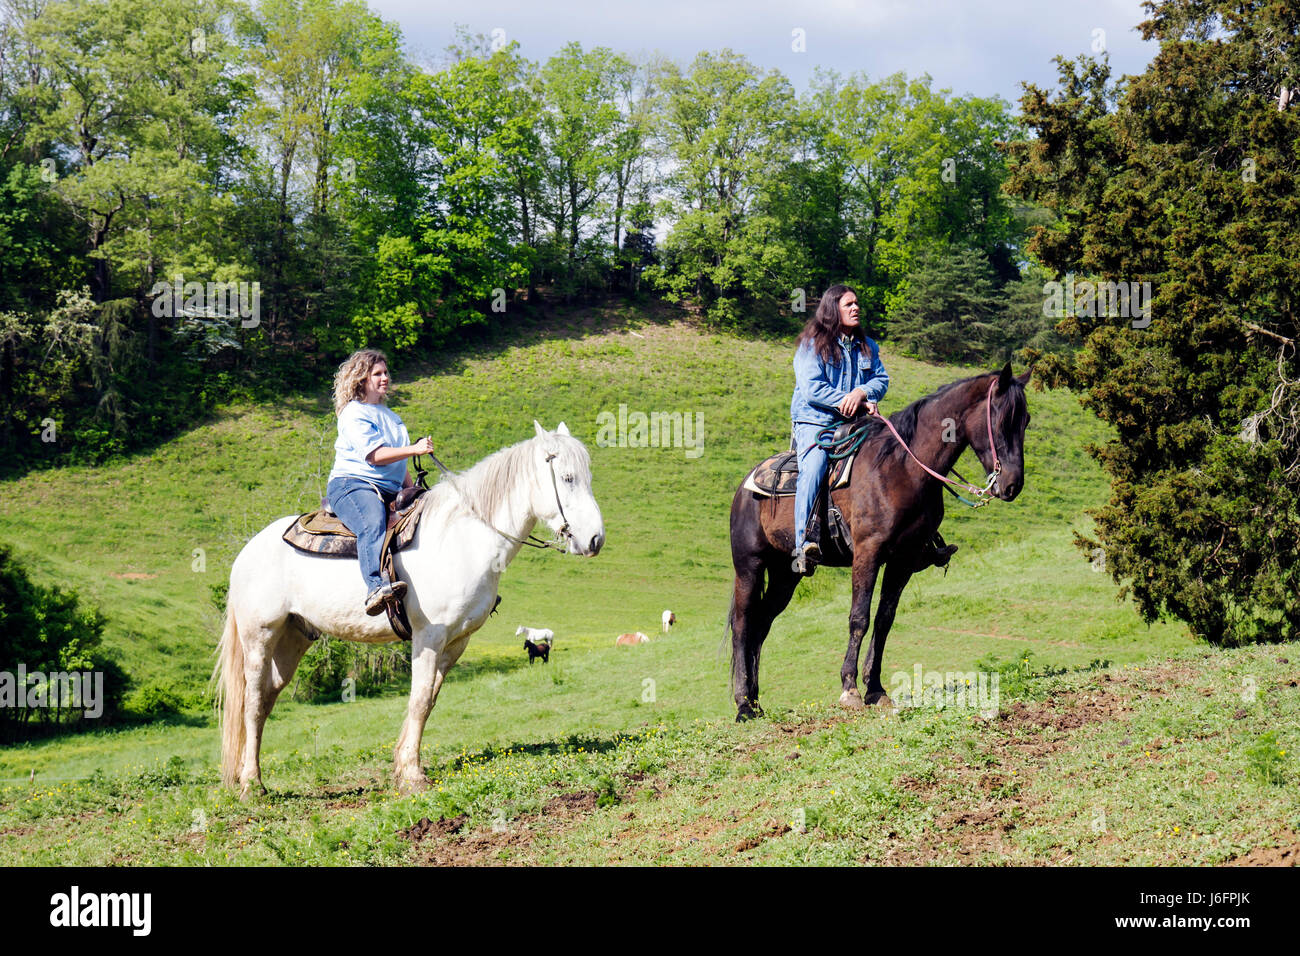 Tennessee Sevierville Five Oaks Riding Stables - Stock Image